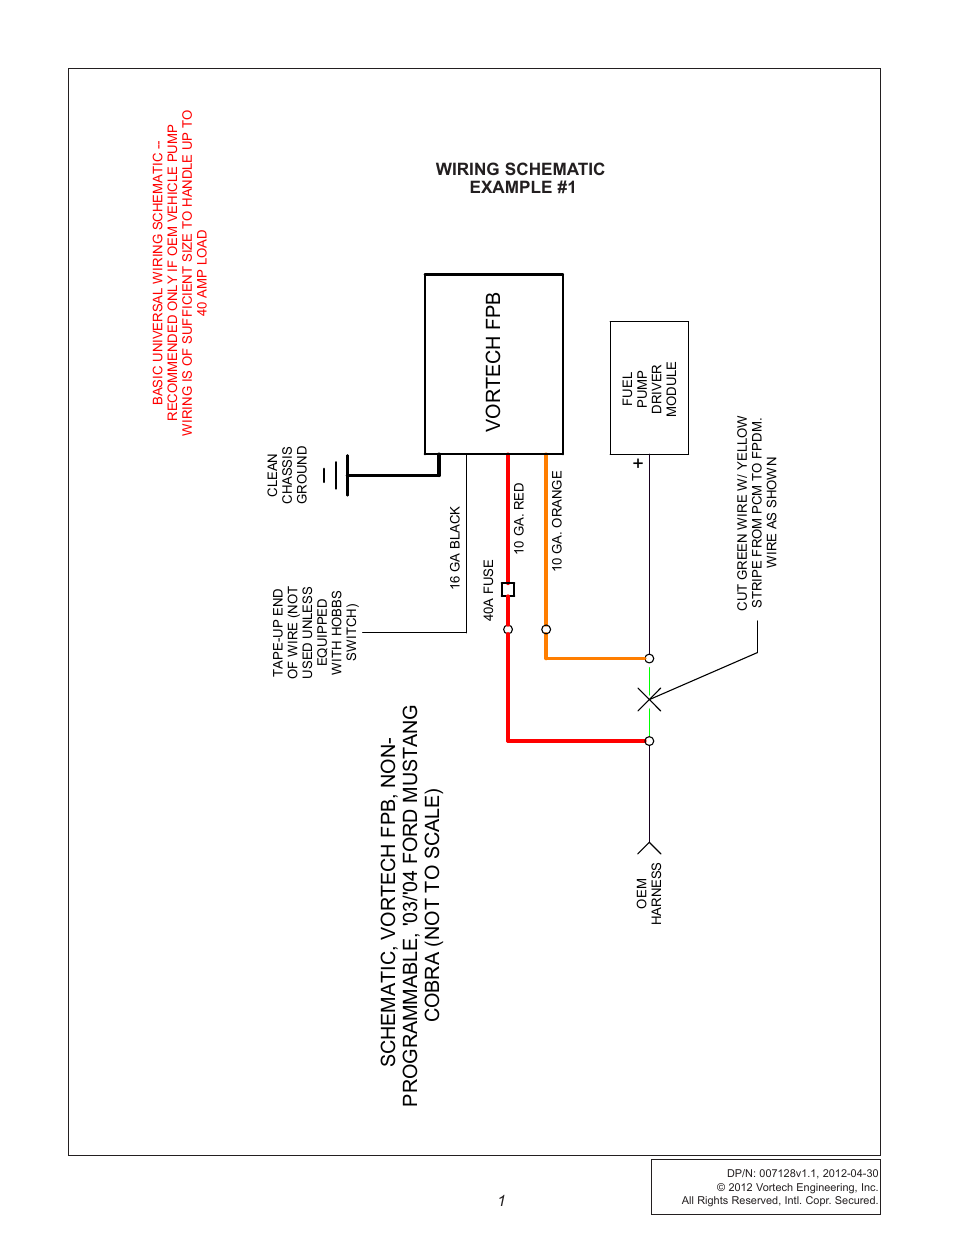 Vortech Maxflo Fuel Pump Booster Fpb Universal Fit User Manual Wiring Diagram Page 7 13